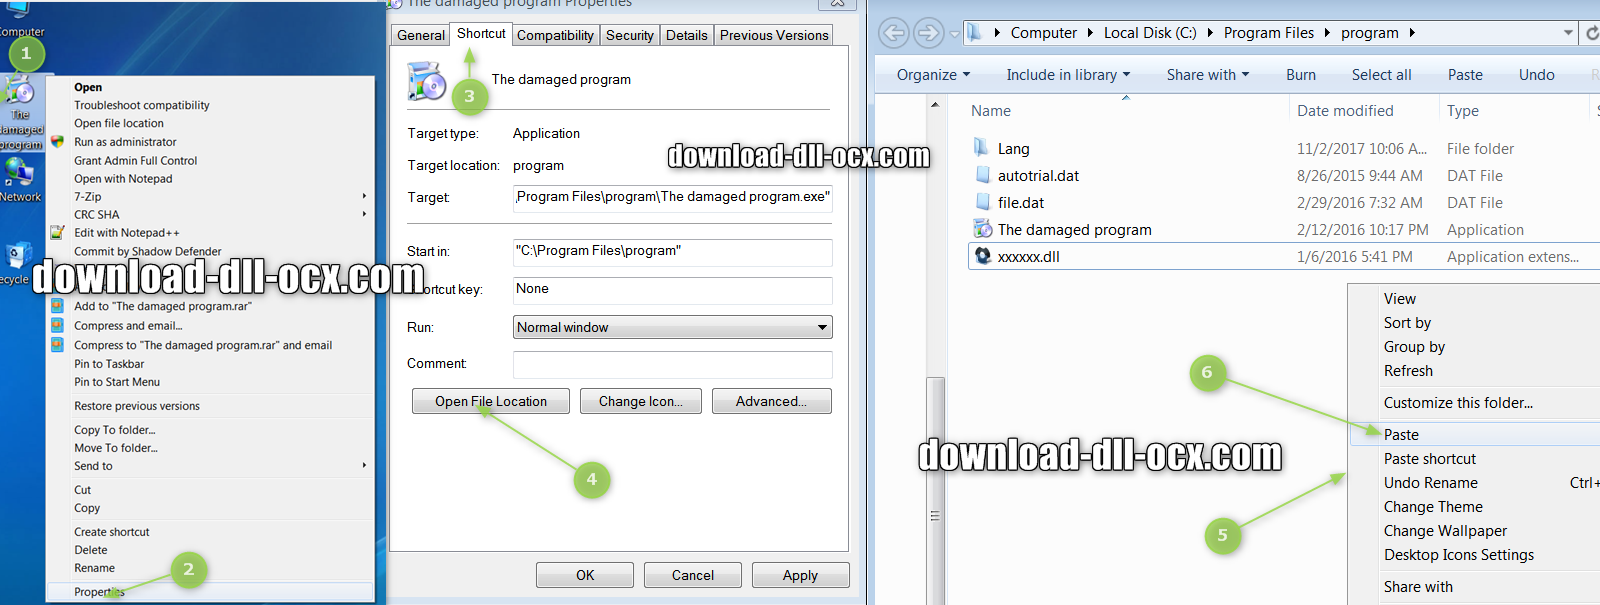 how to install jgaugen.dll file? for fix missing